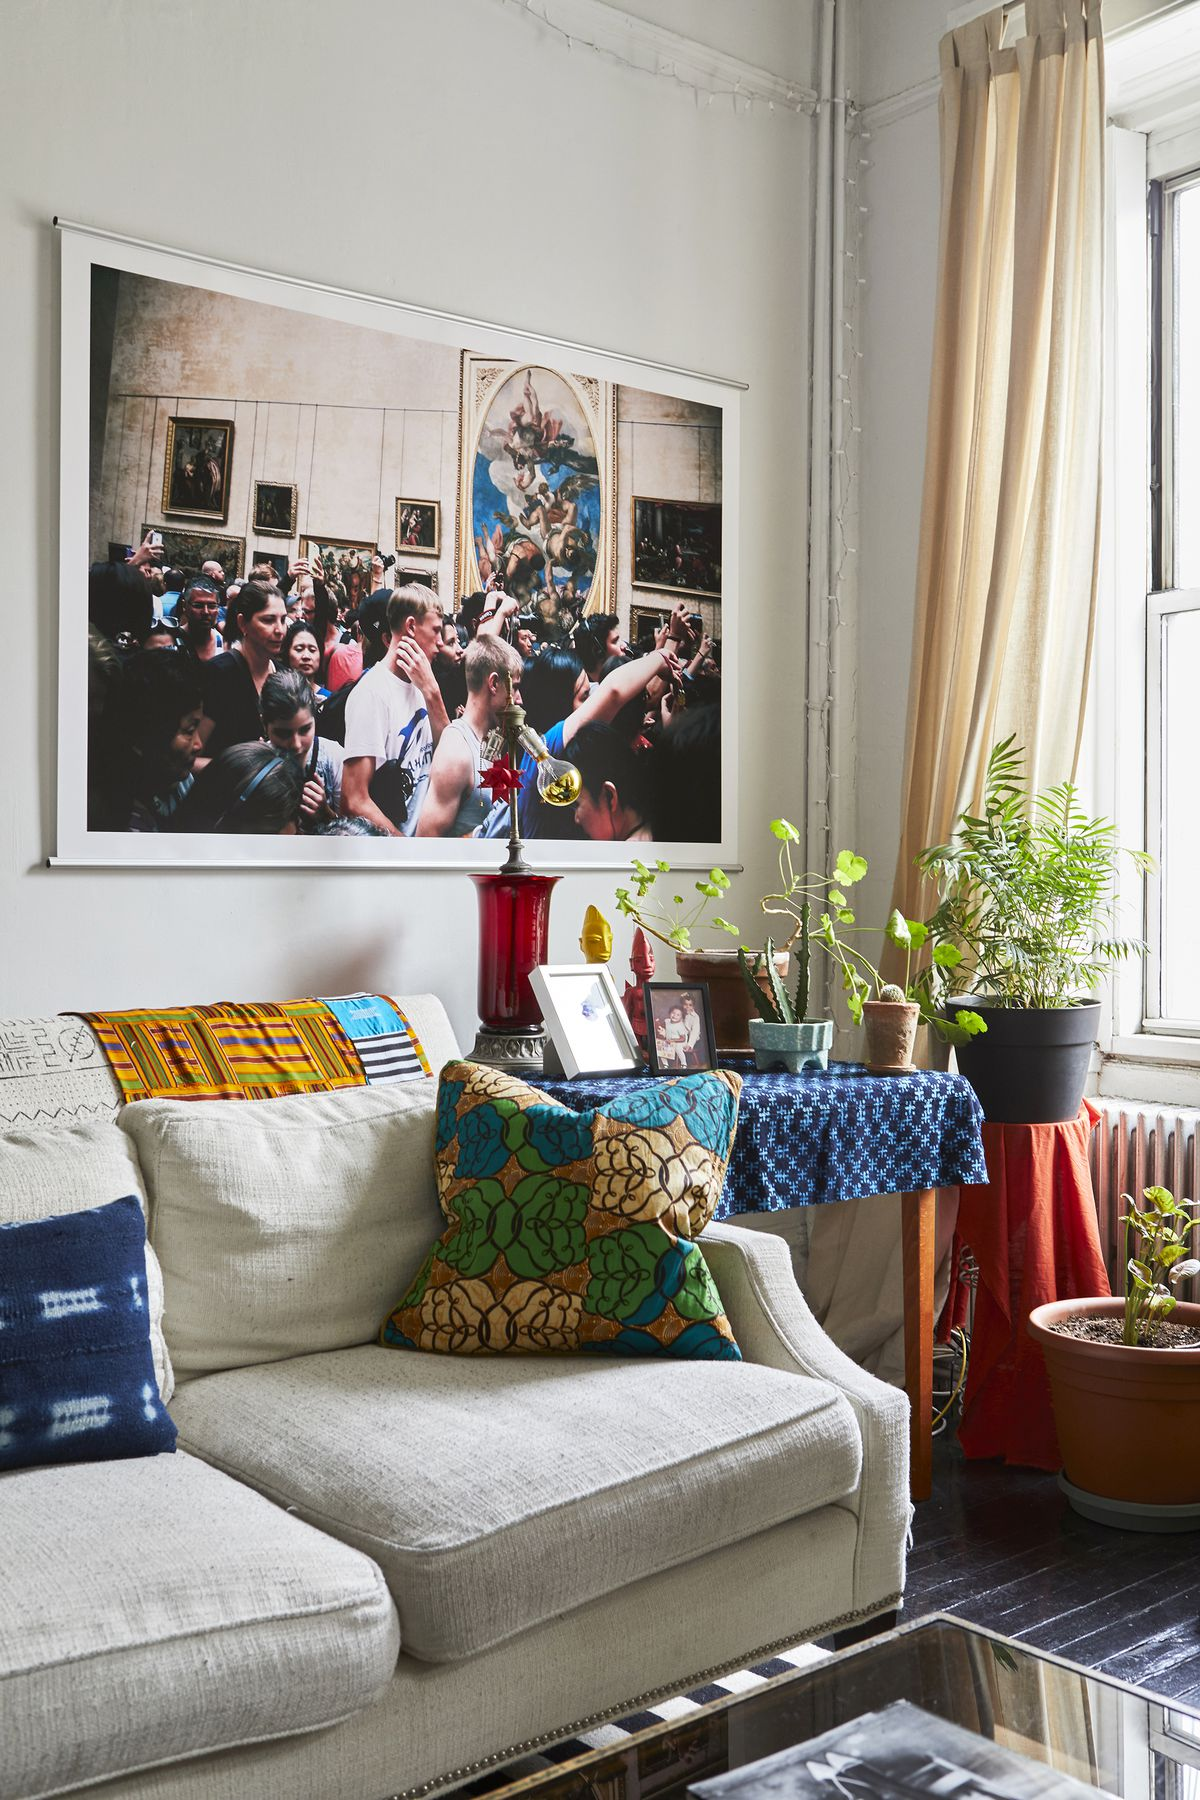 In the living room, a bright photograph hangs over a white sofa.